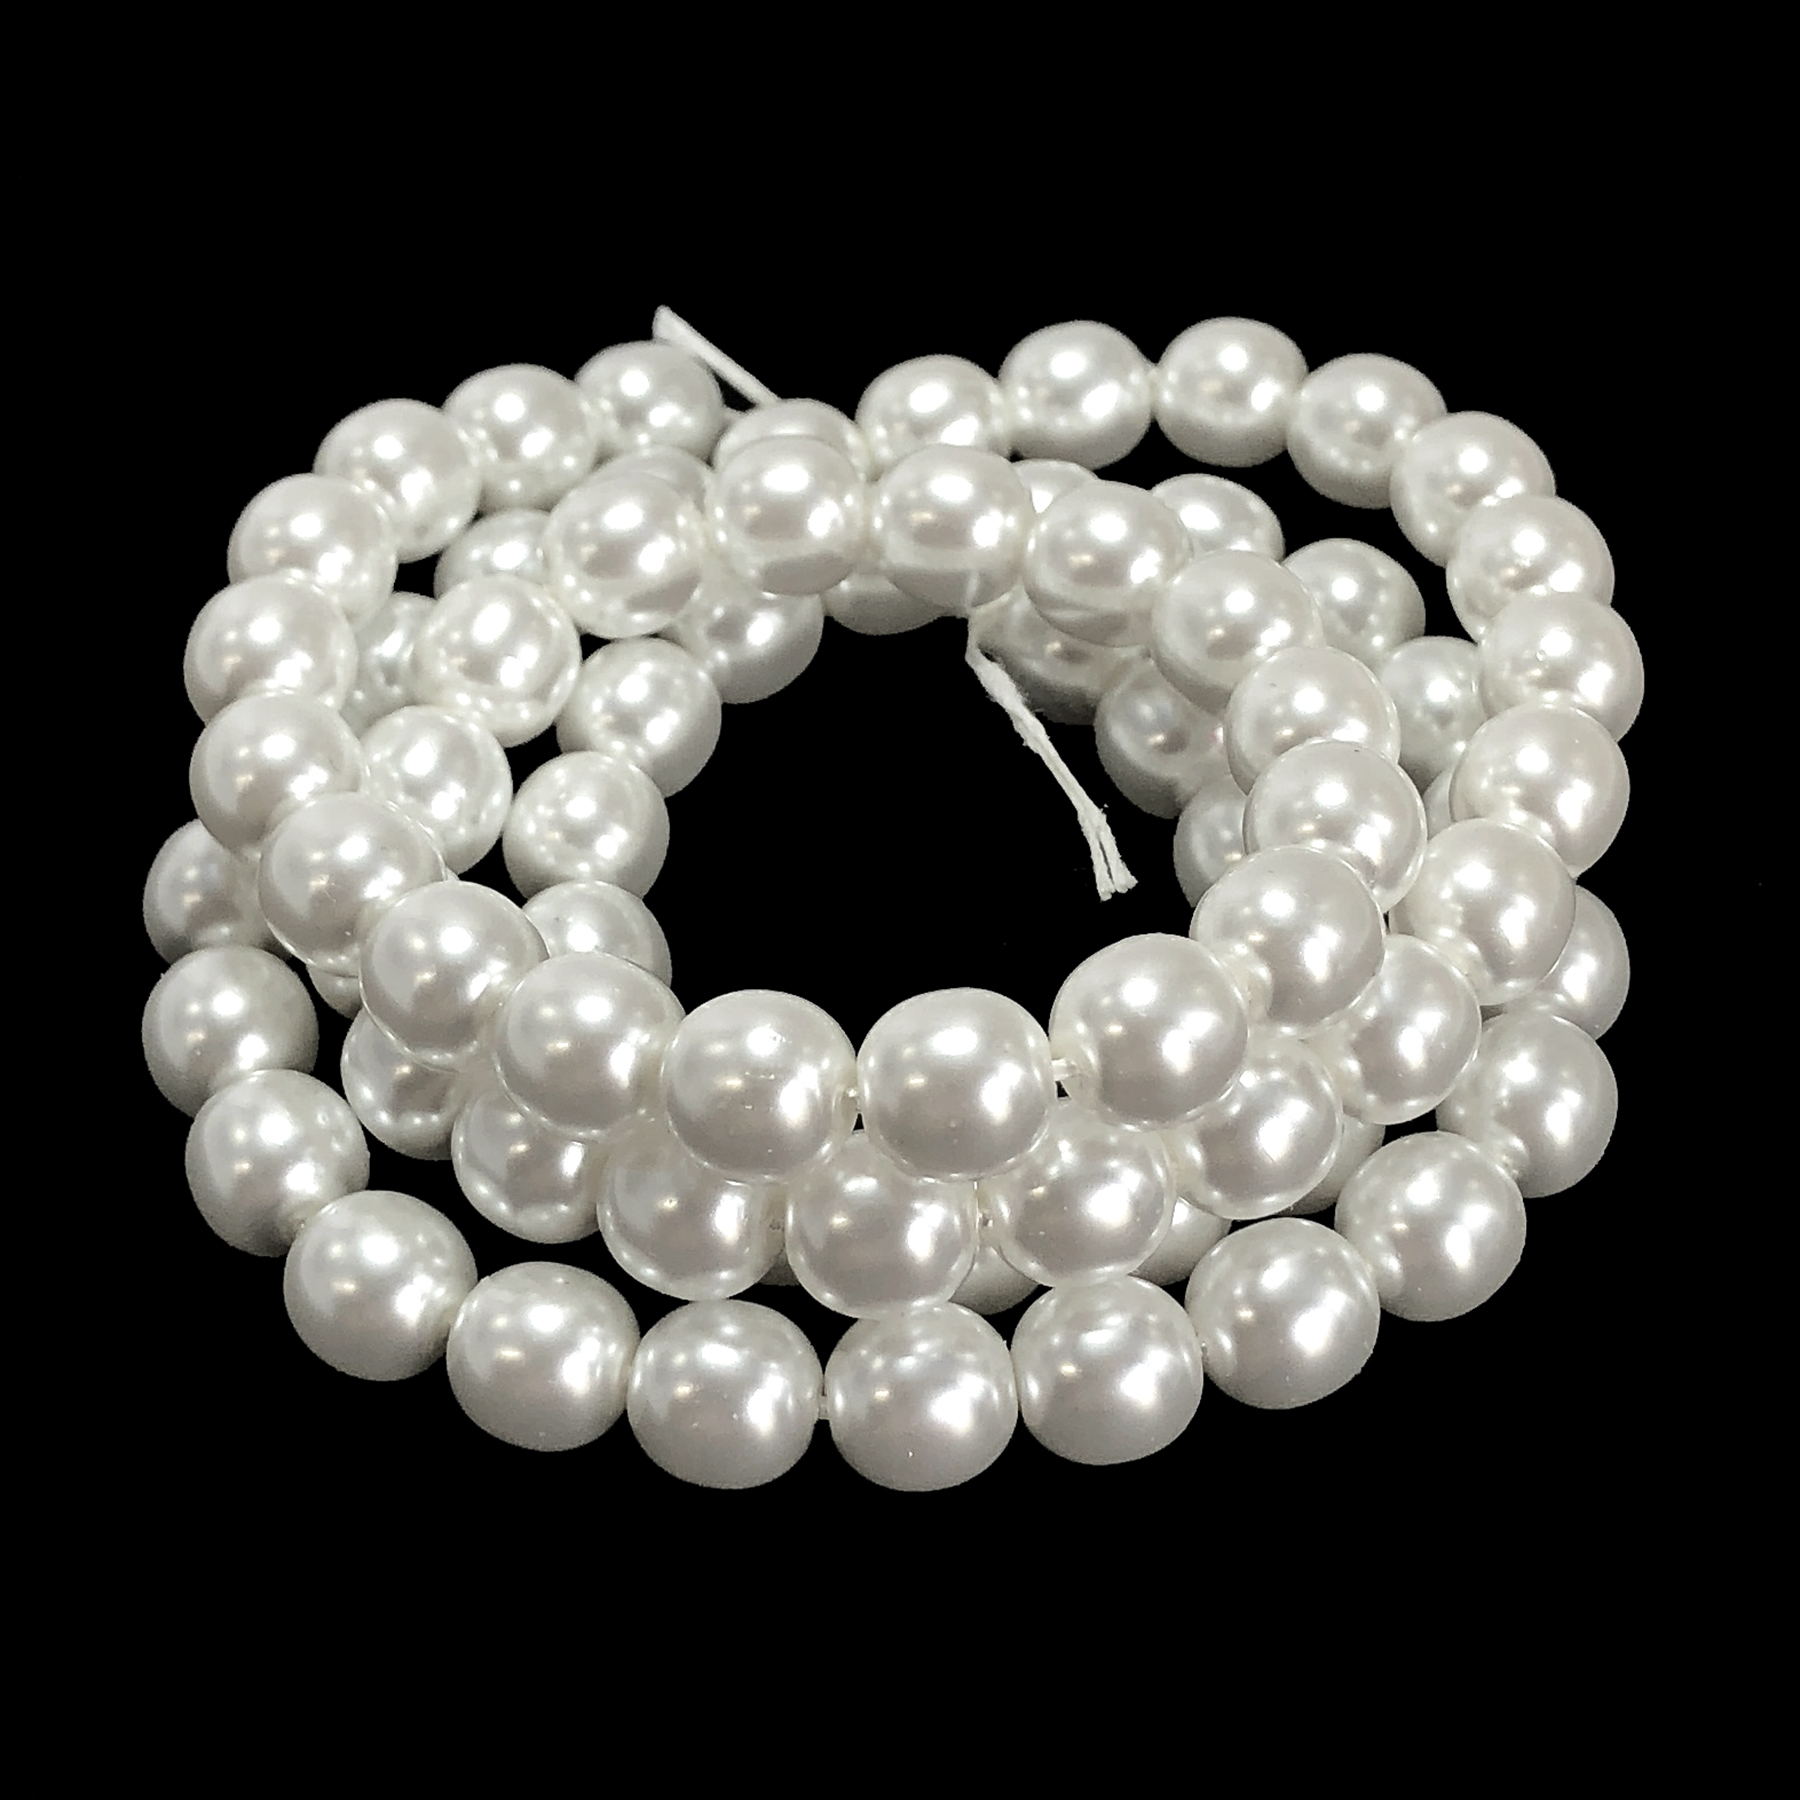 white pearl beads, white snow pearl beads, 8mm bead, glass pearl, Czech, B'sue Boutiques, bead, jewelry making, beading supplies, vintage supplies, pearl, pearl beads, glass beads, jewelry supplies, jewelry beads, white beads, 09524